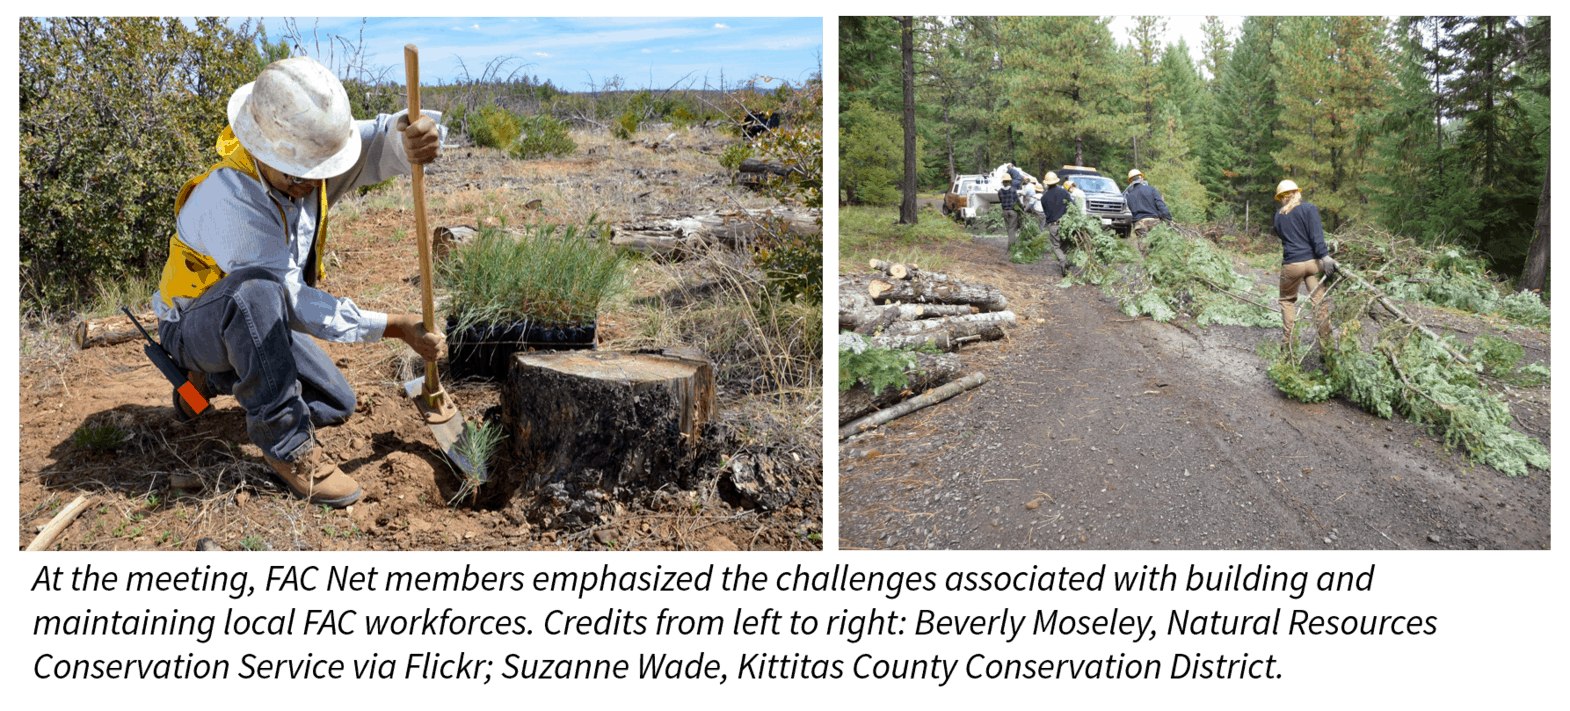 Two images of FAC work underway. On the left, a restoration worker planting pine saplings after a fire. On the right, a community removing excess fuels from the forest. Text below images reads: At the meeting, FAC Net members emphasized the challenges associated with building and maintaining local FAC workforces. Credits from left to right: Beverly Moseley, Natural Resources Conservation Service via Flickr; Suzanne Wade, Kittitas County Conservation District.